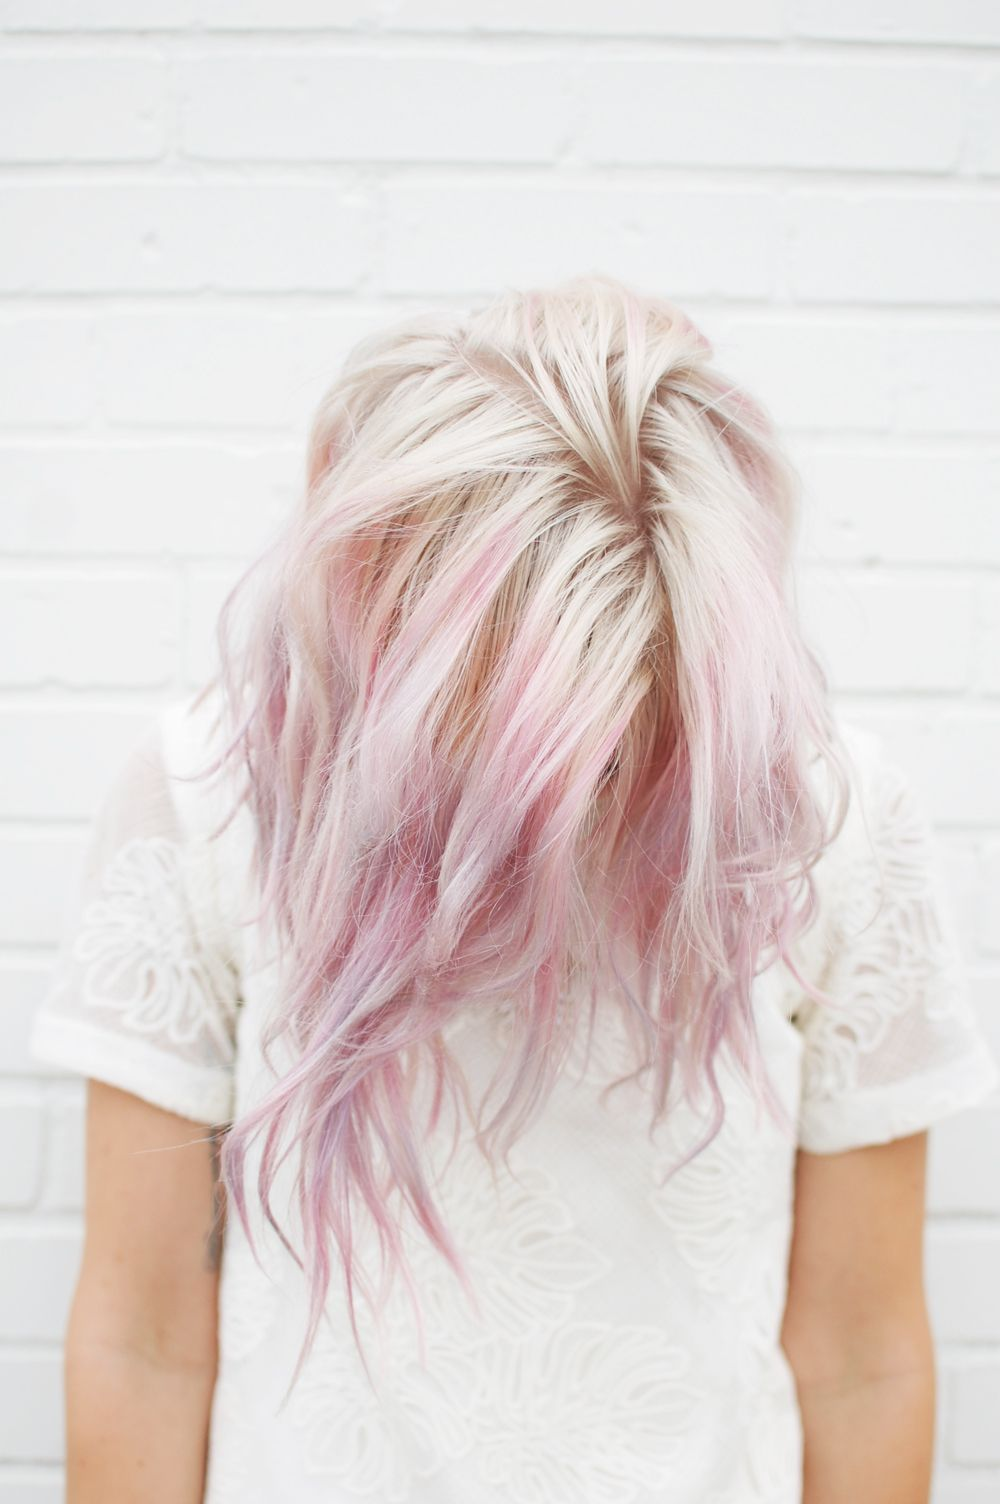 yummy u uber trending cotton candy hair color ideas Идеи для